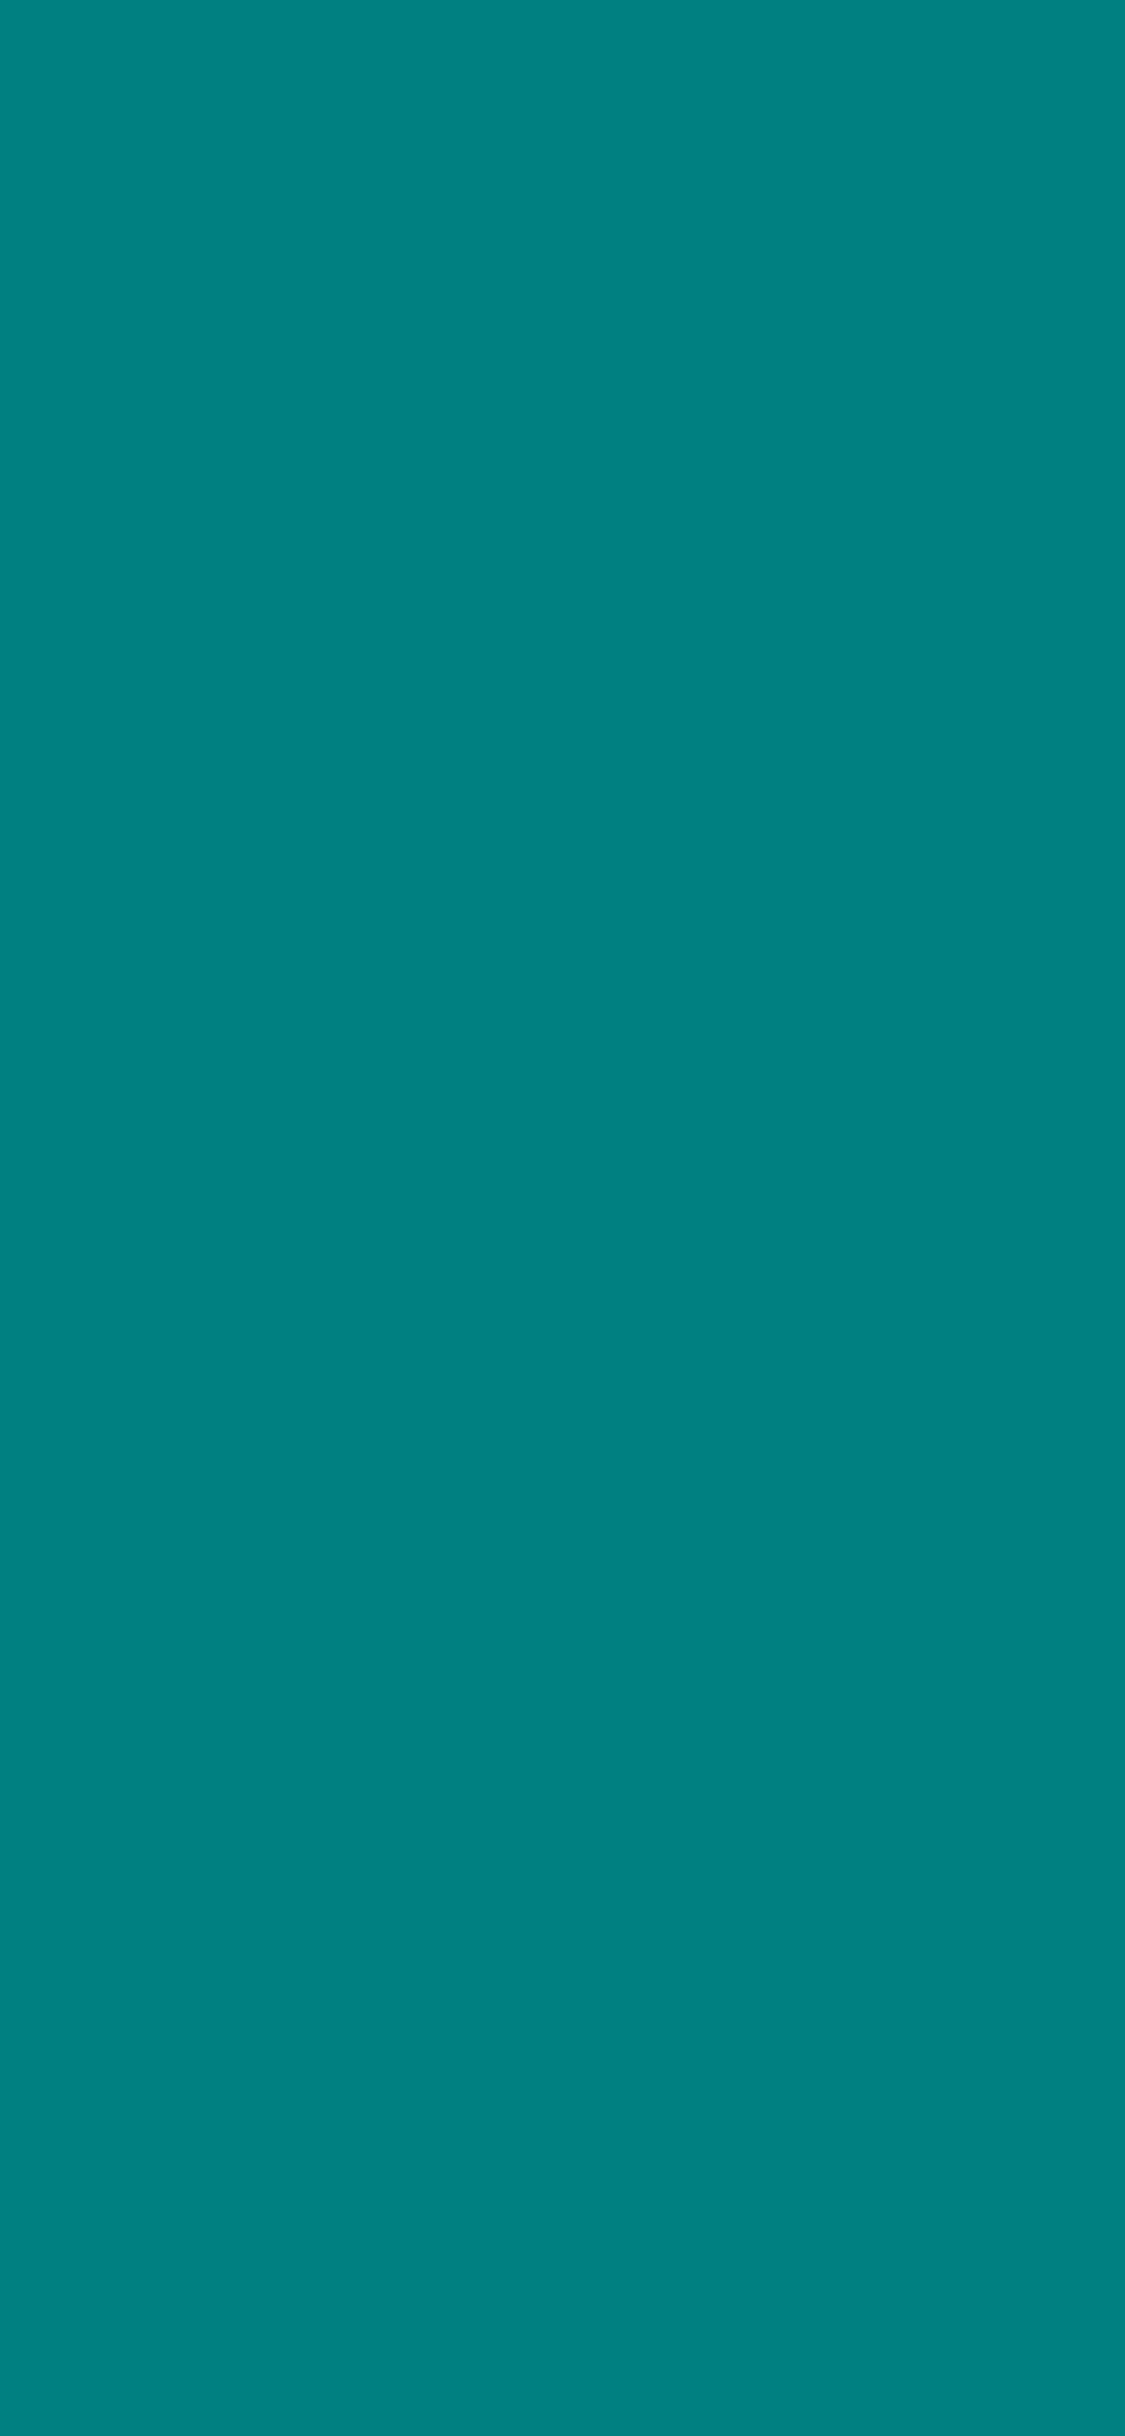 1125x2436 Teal Solid Color Background